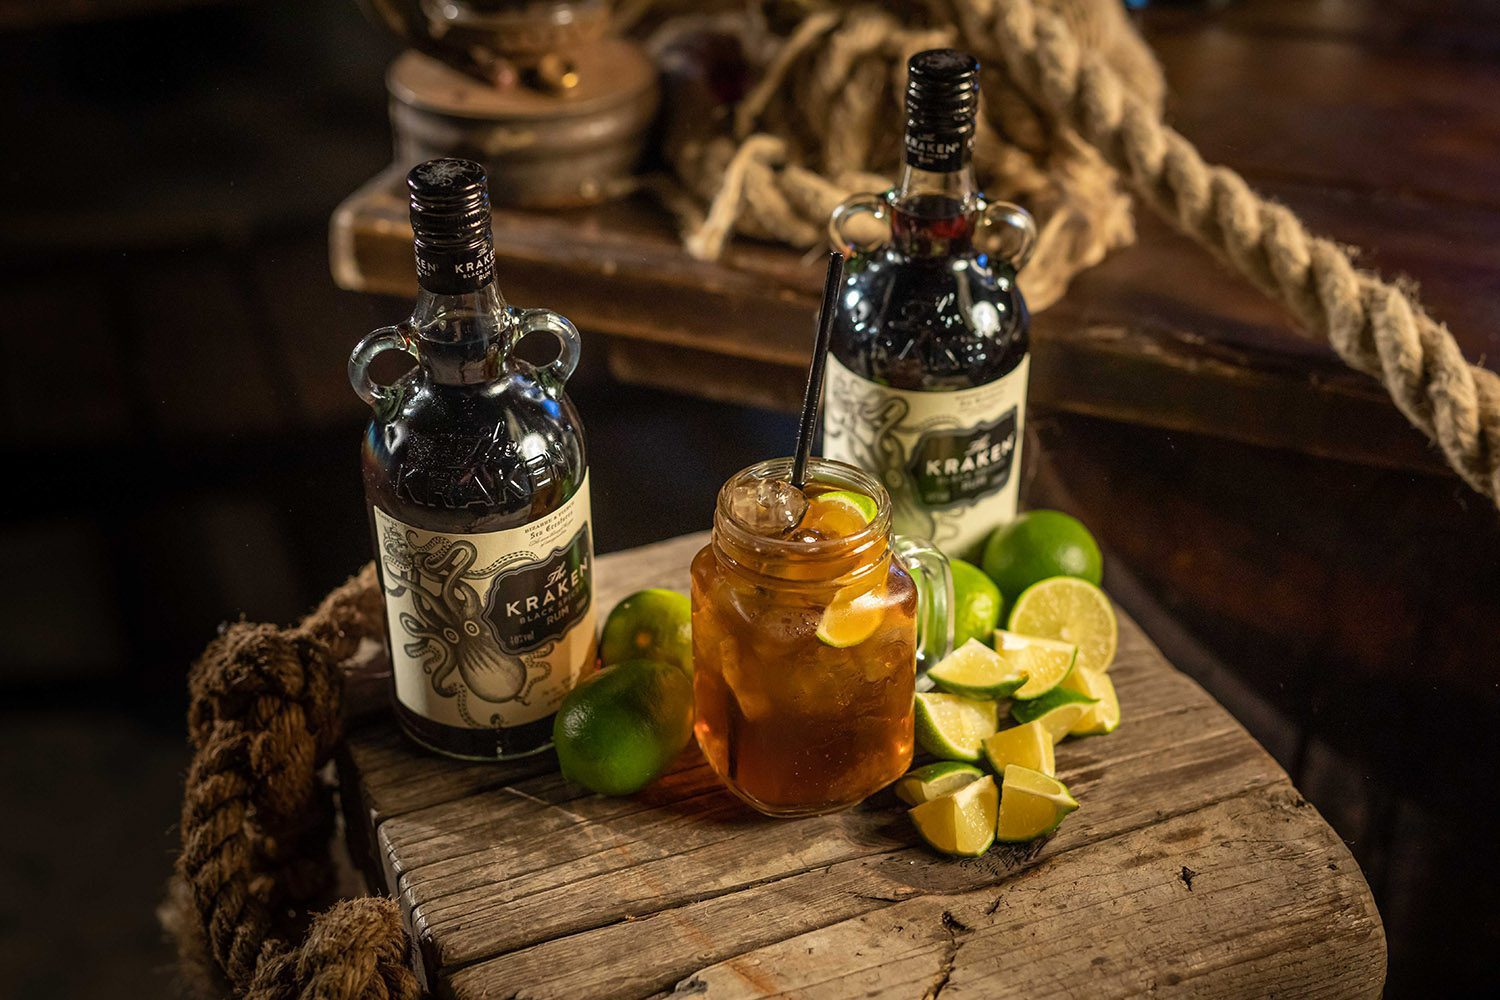 The Kraken Black Spiced Rum Cocktail The Perfect Storm On A Boat